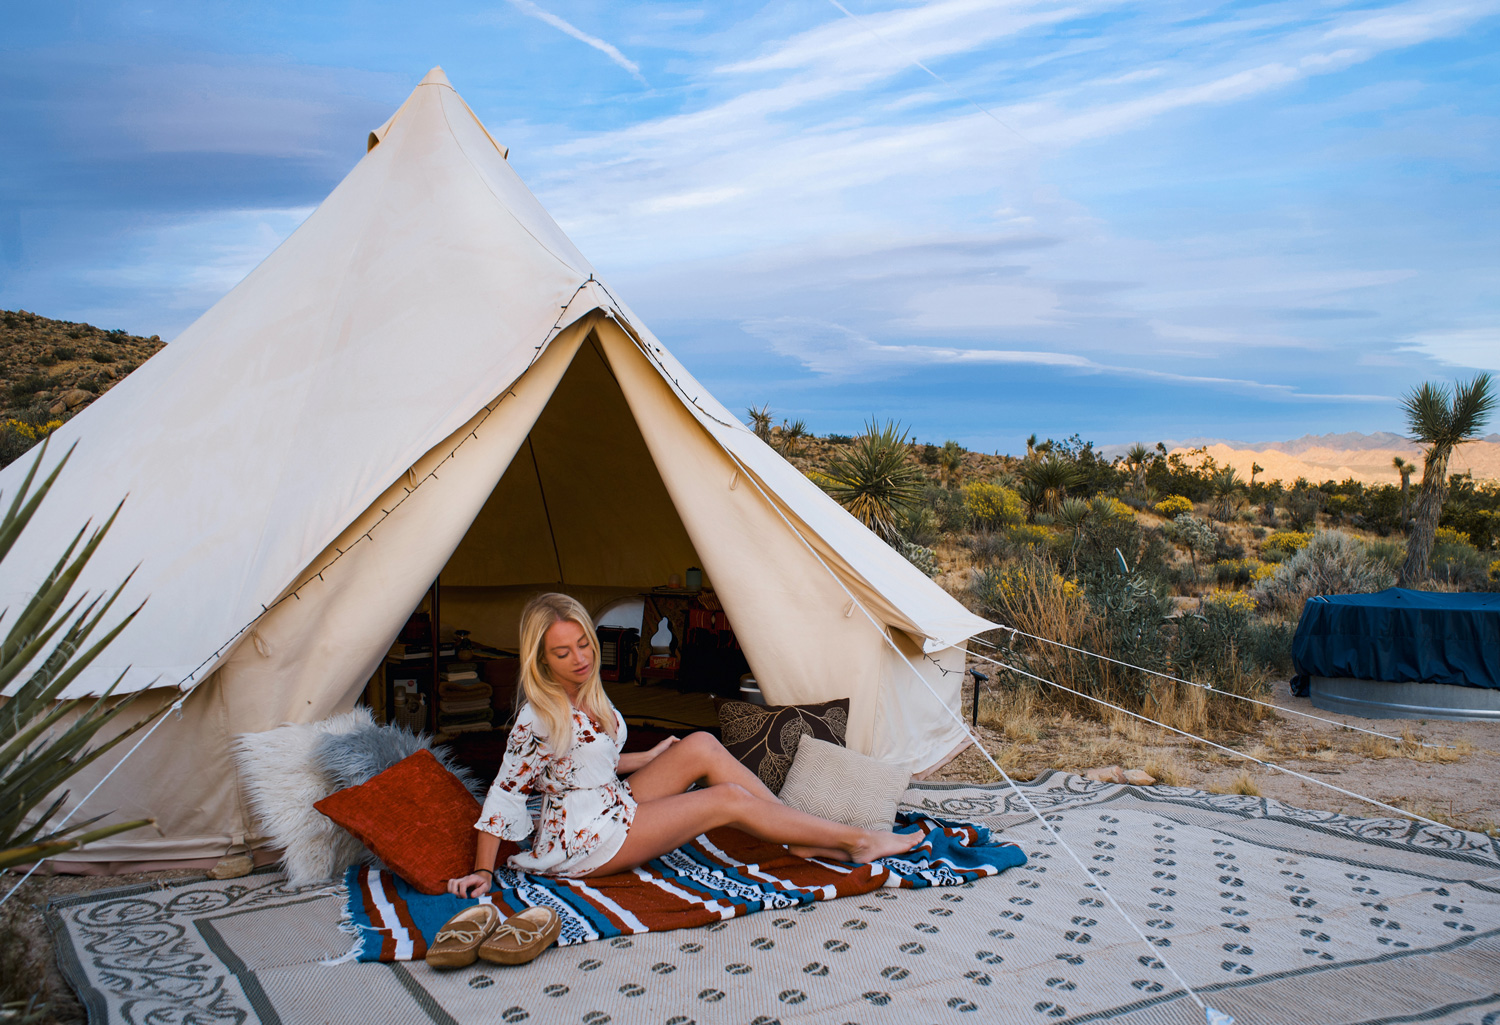 Bucket List Glamping In Joshua Tree This Adventure Life Our kids really loved it too, and enjoyed. bucket list glamping in joshua tree